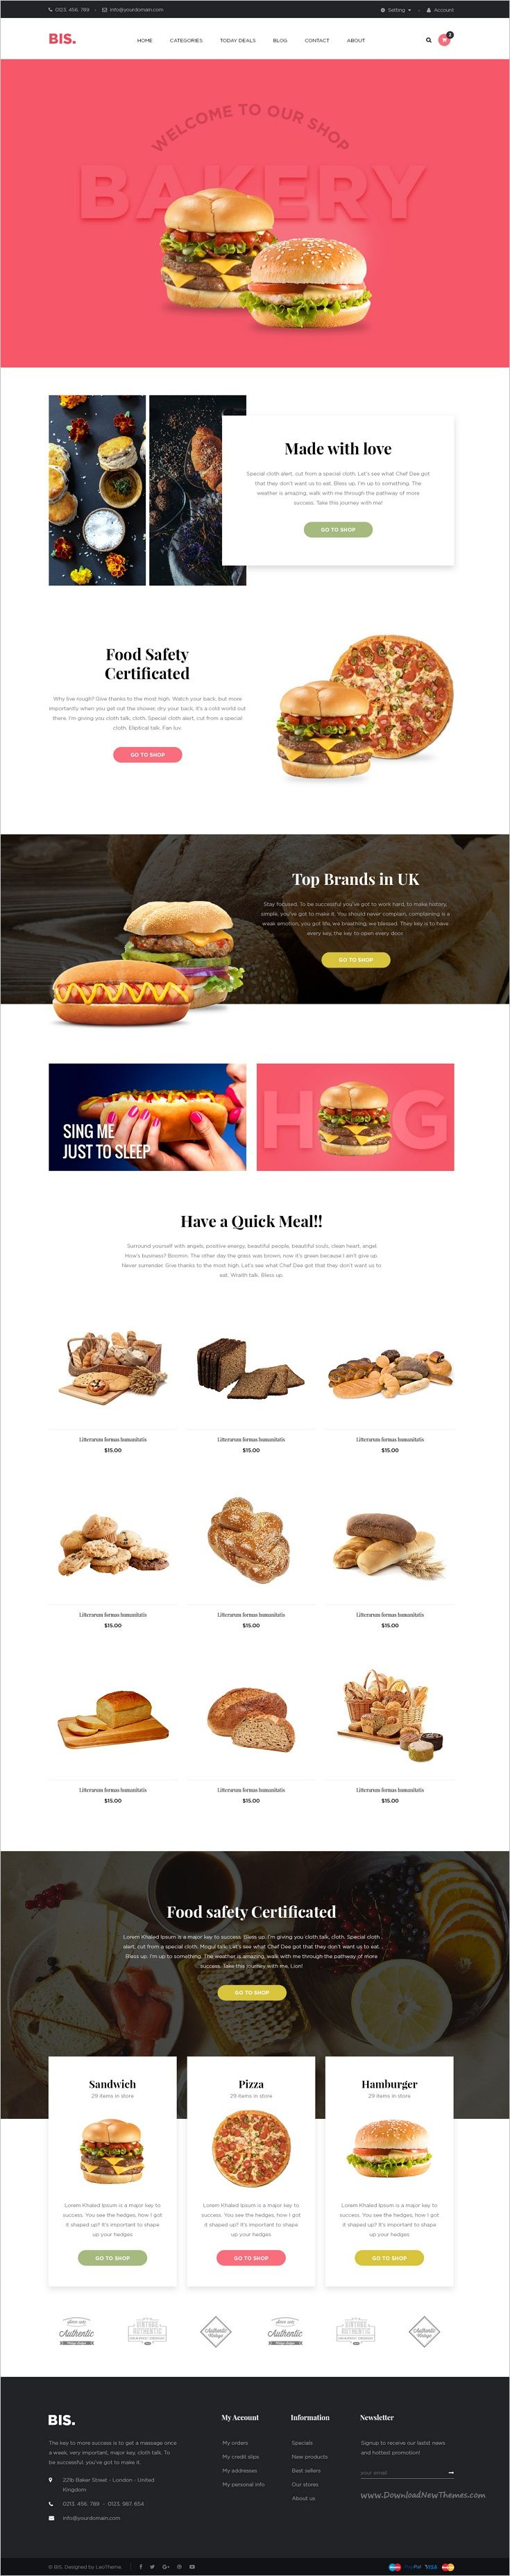 Leo Bis is a wonderful eCommerce #Photoshop #Template for #bakery #shop website download now➩ https://themeforest.net/item/leo-bis-ecommerce-psd-template/18347677?ref=Datasata